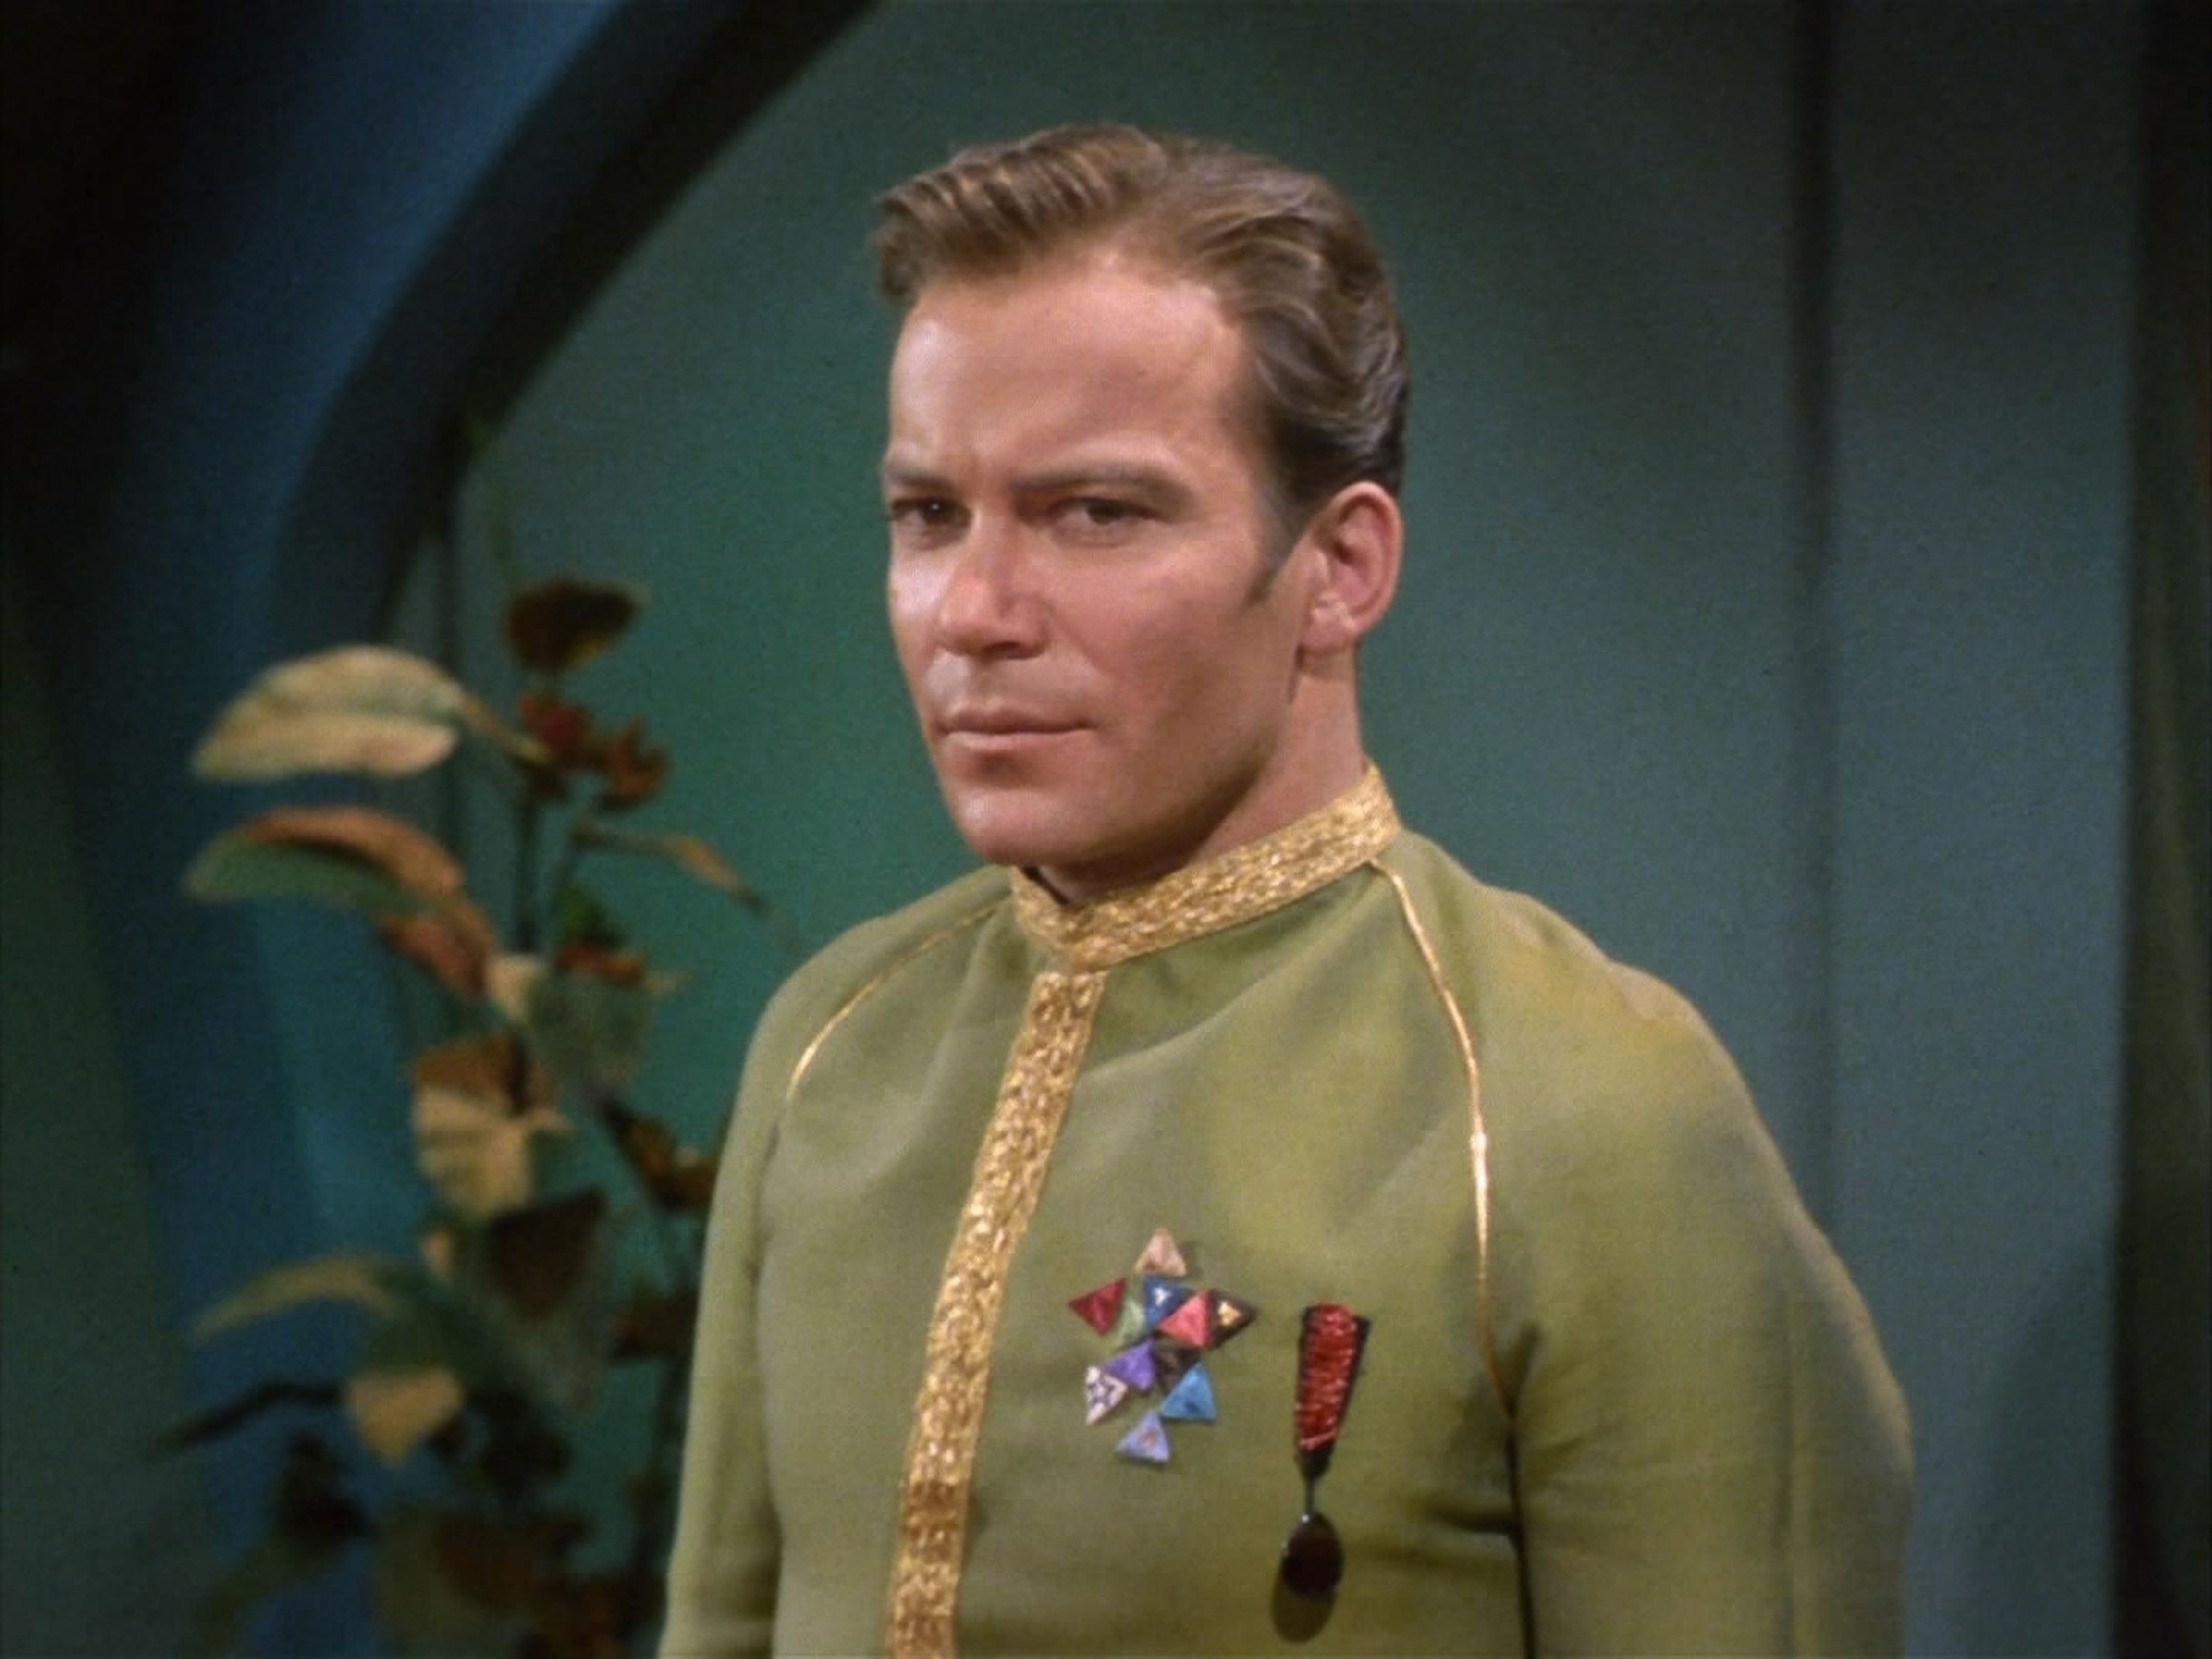 """William Shatner as Captain James T. Kirk on the """"Star Trek: The Original Series"""" episode, """"Space Seed."""" 